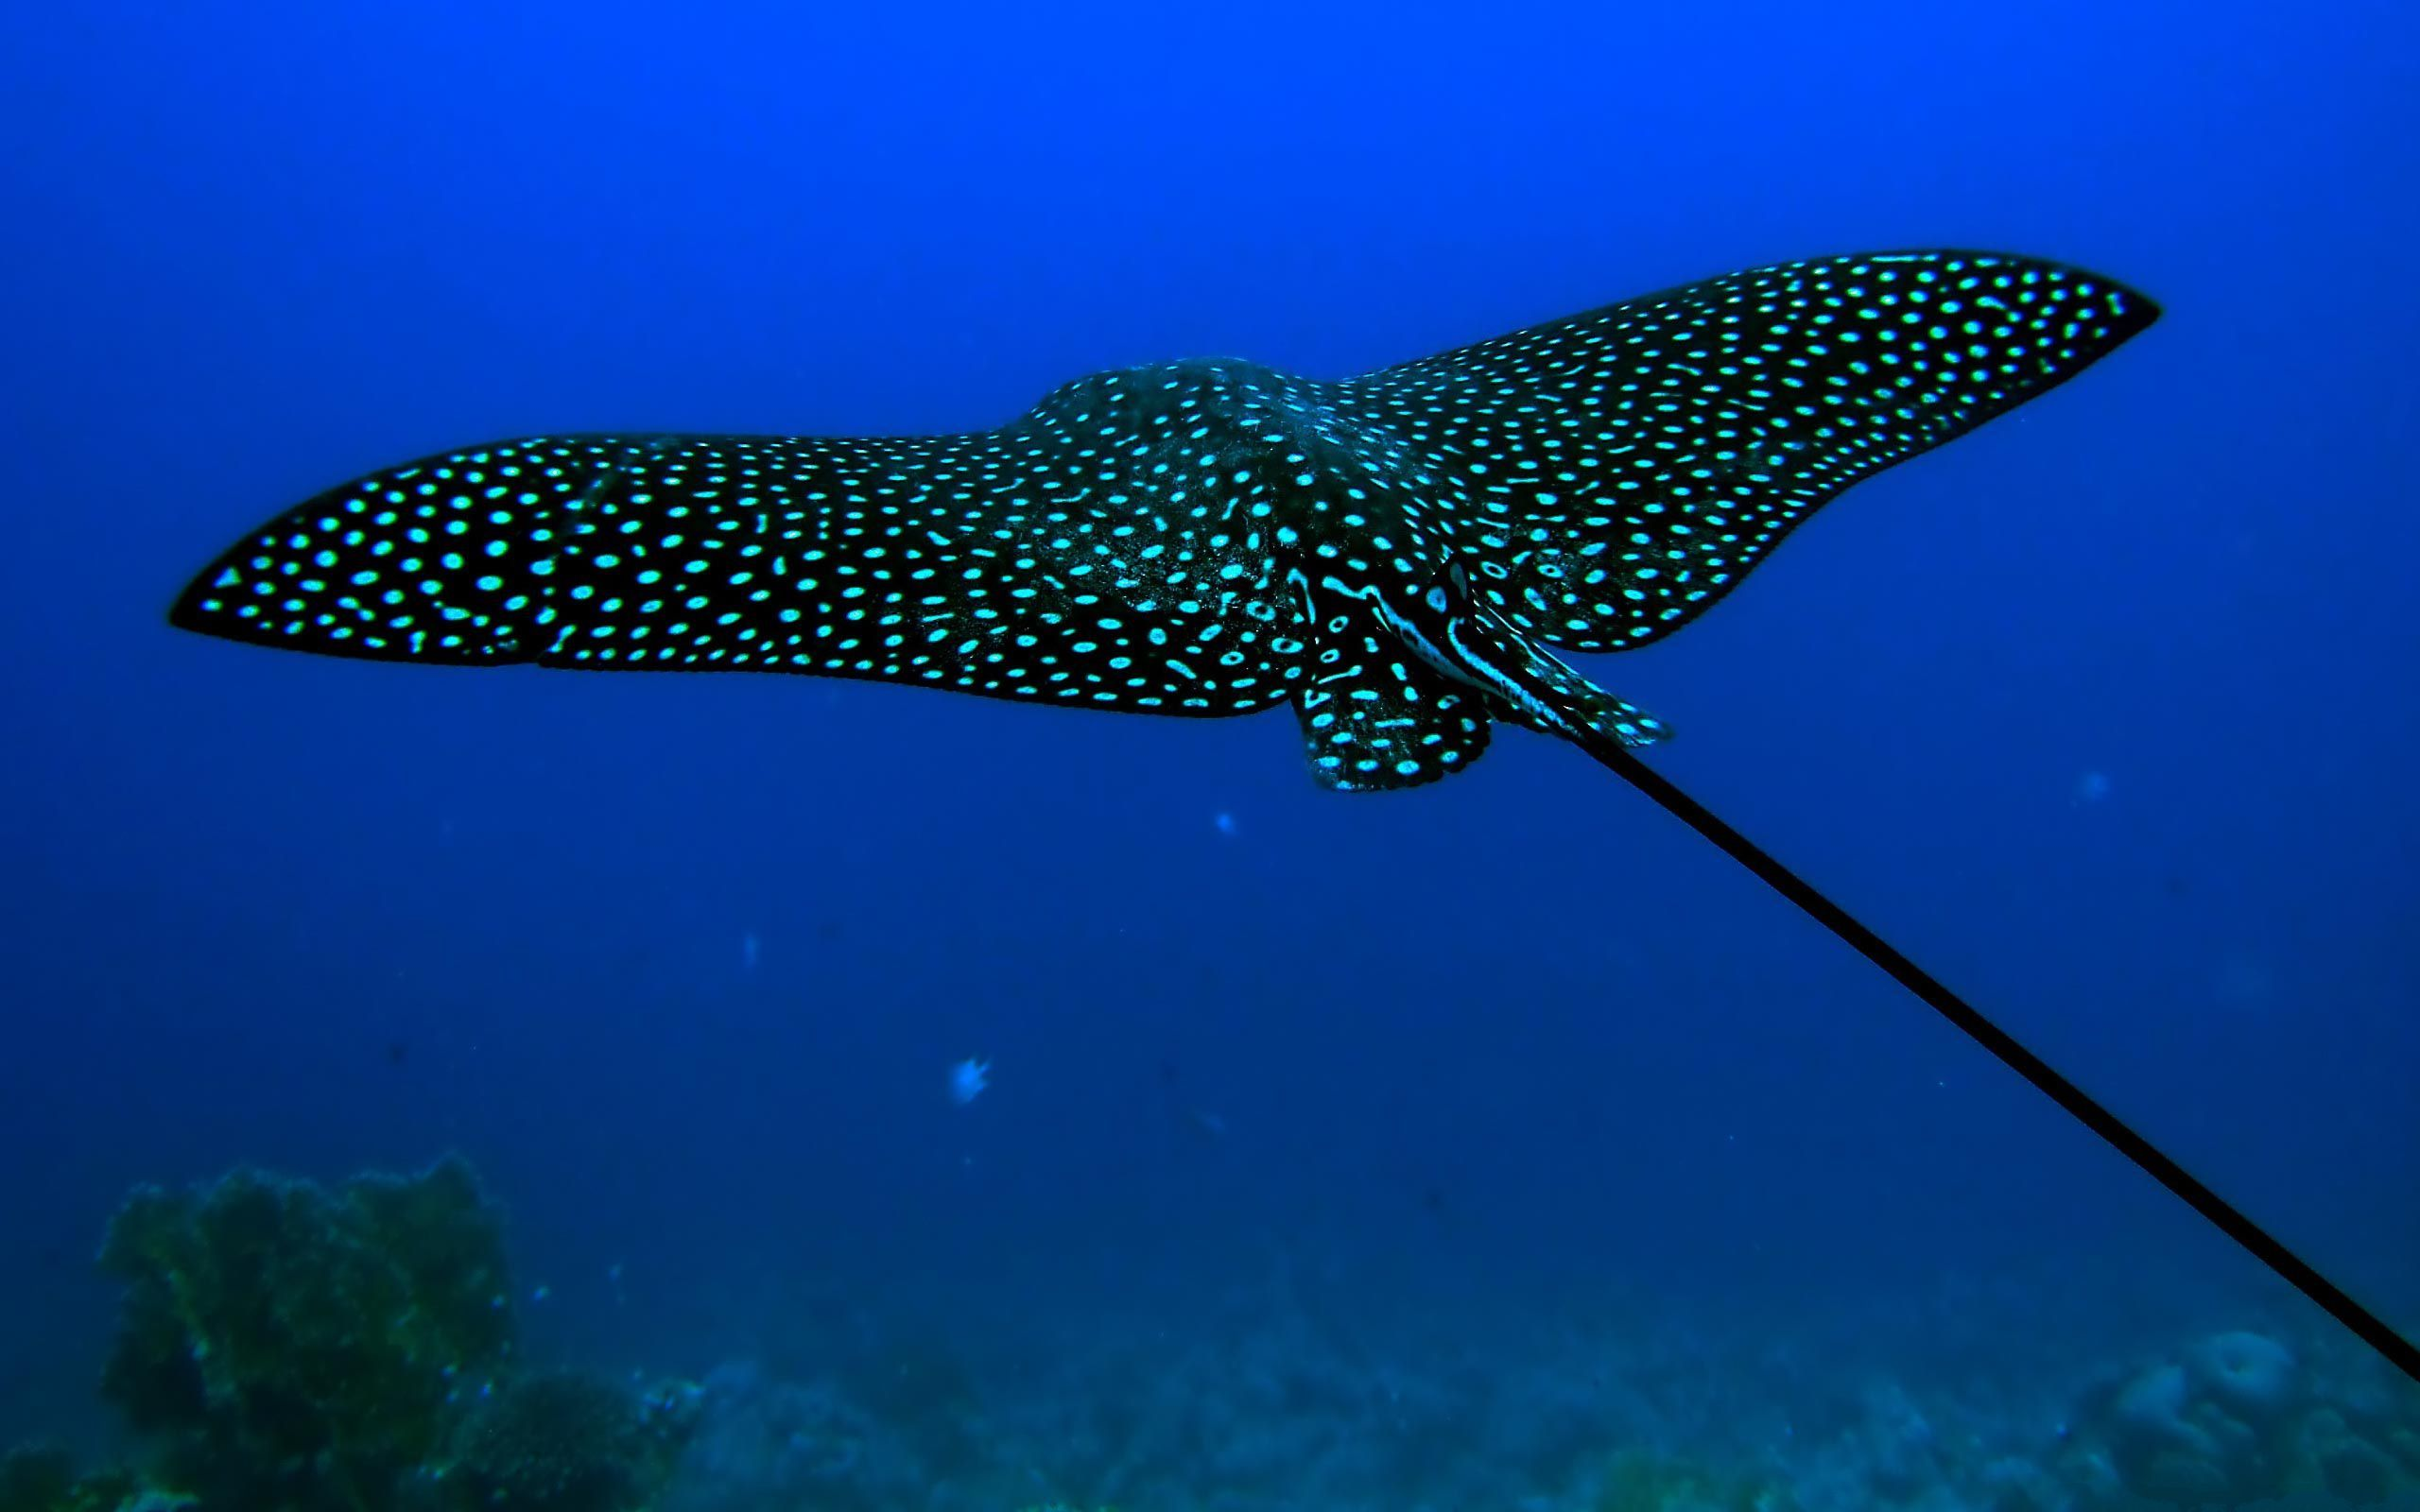 Stingray Fish The Mysterious Stingray Fish Hd Wallpapers